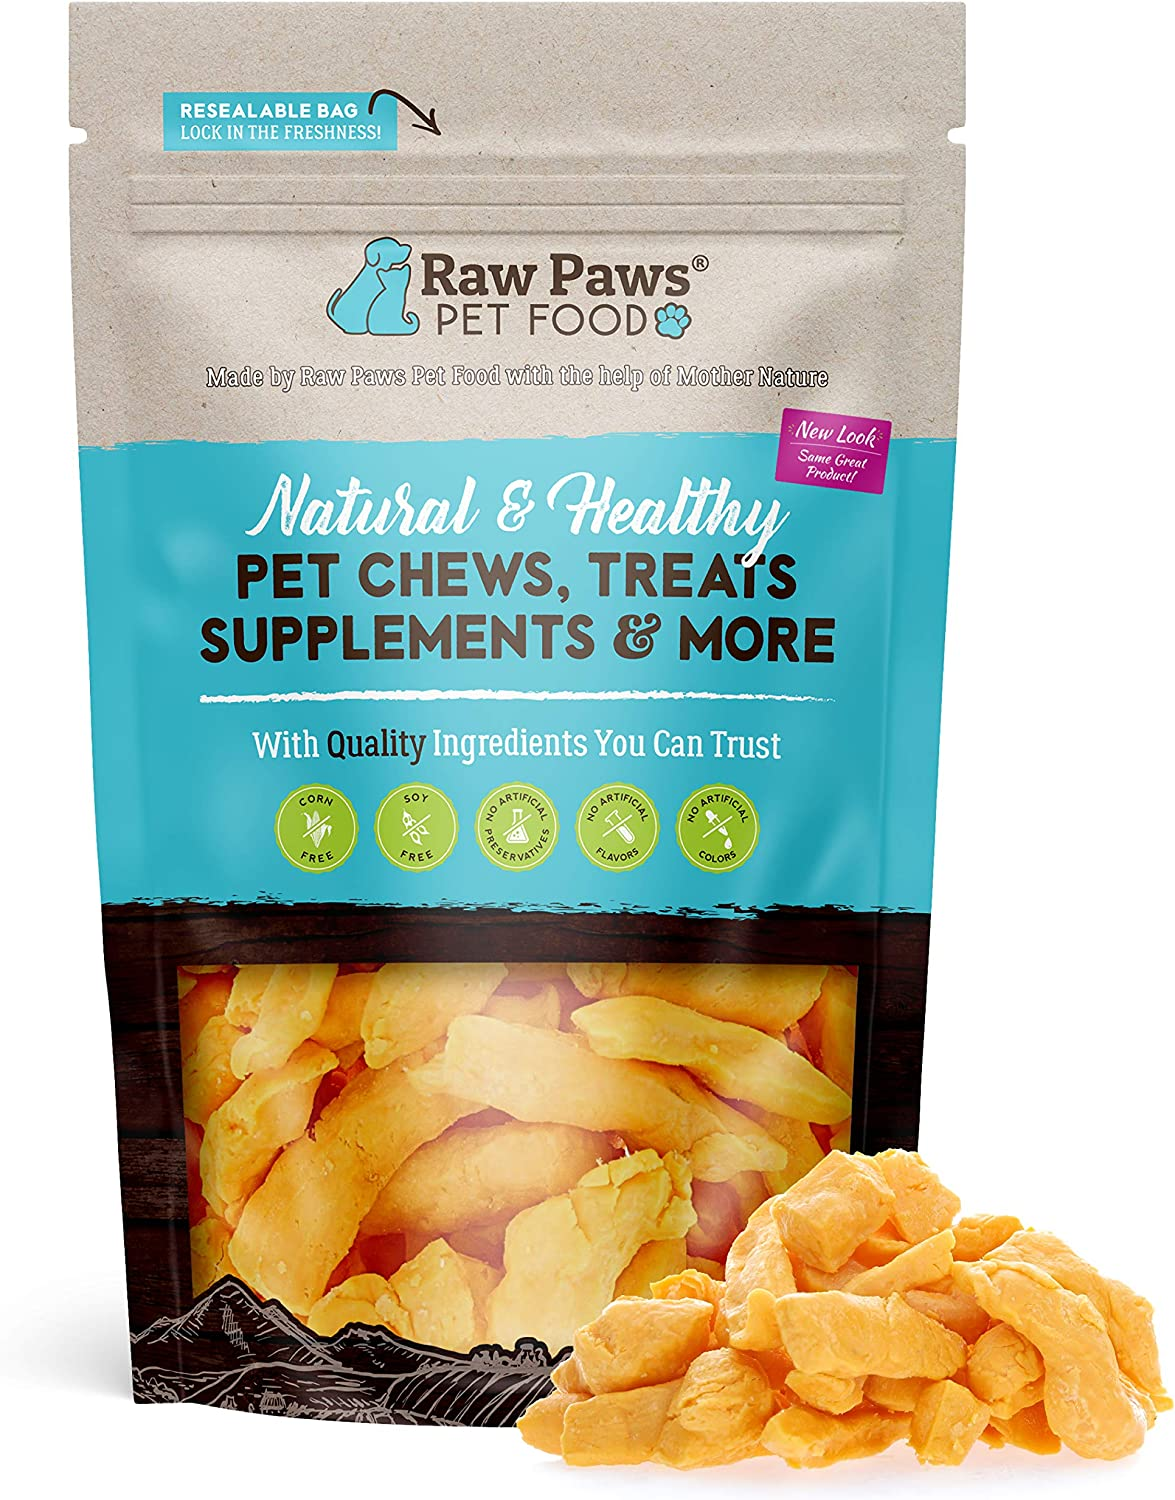 Raw Paws Wisconsin Freeze Dried Cheese Dog Treats - Crunchy Dog Cheese Puffs Made in USA - Natural, Human Grade Dried Cheese for Dogs - 100% Real Cheddar Cheese Bites for Dogs